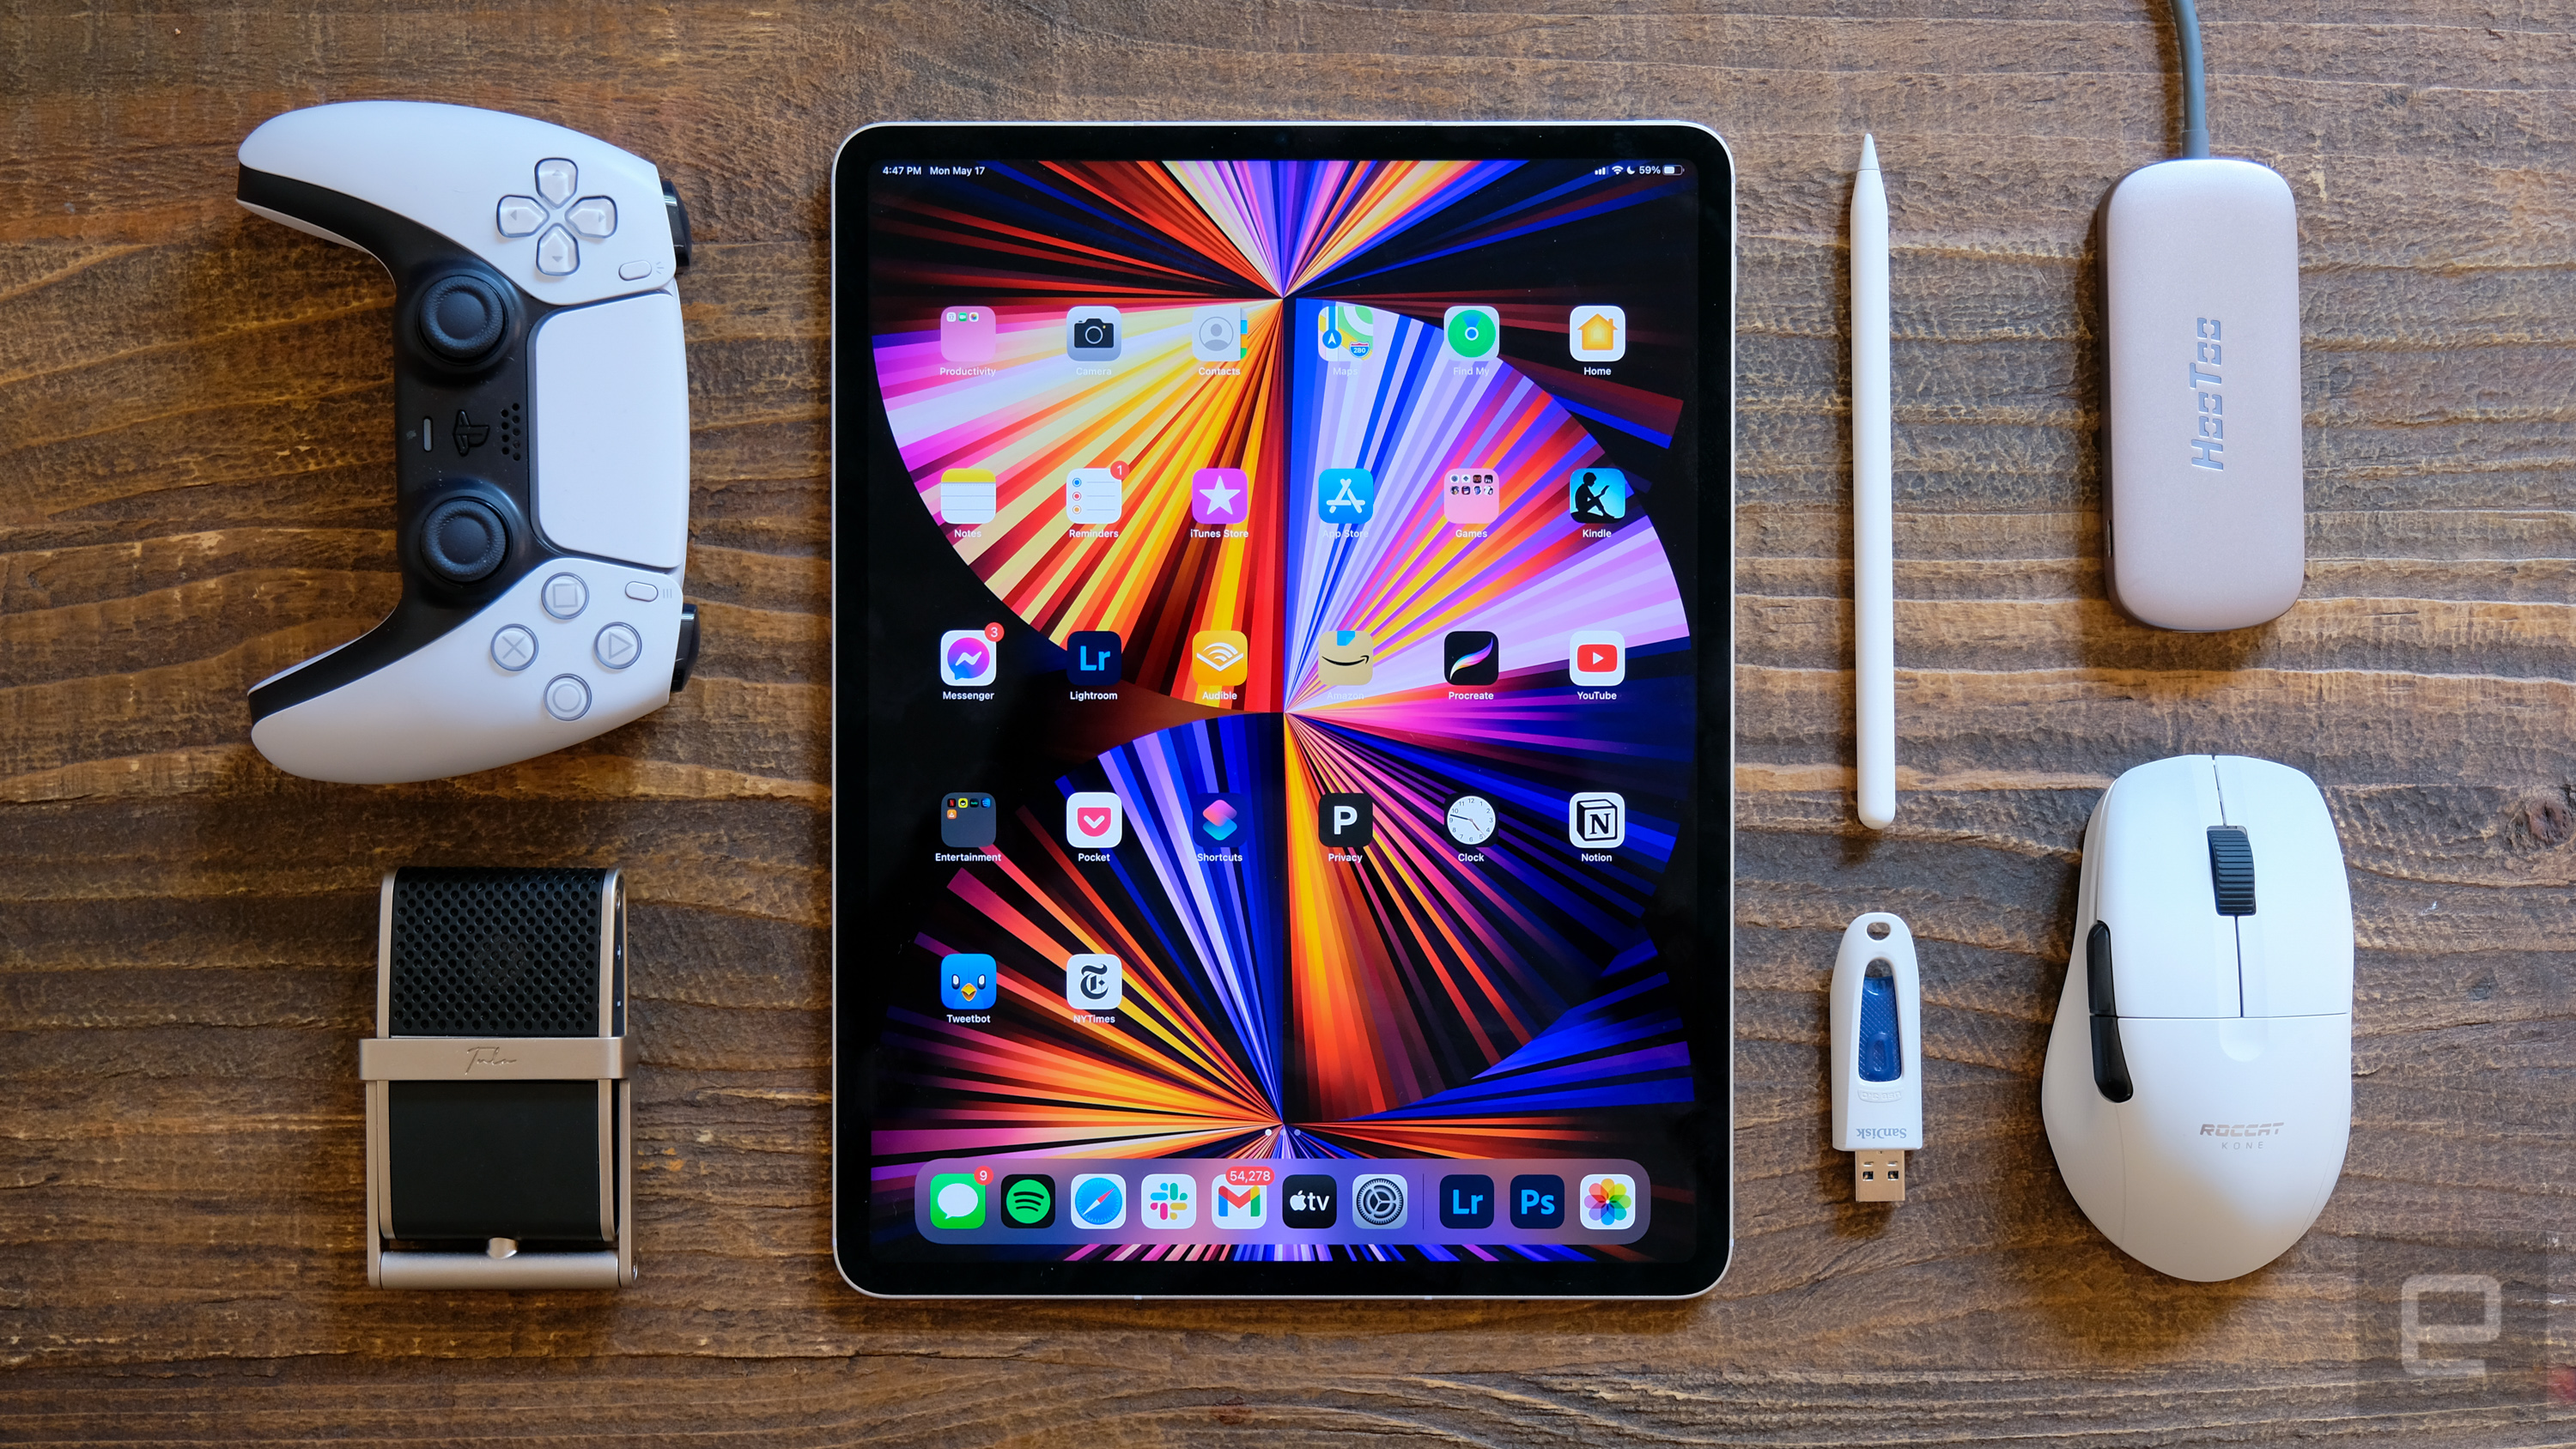 iPad Pro (2021) review: Apple's hardware may have outpaced its software